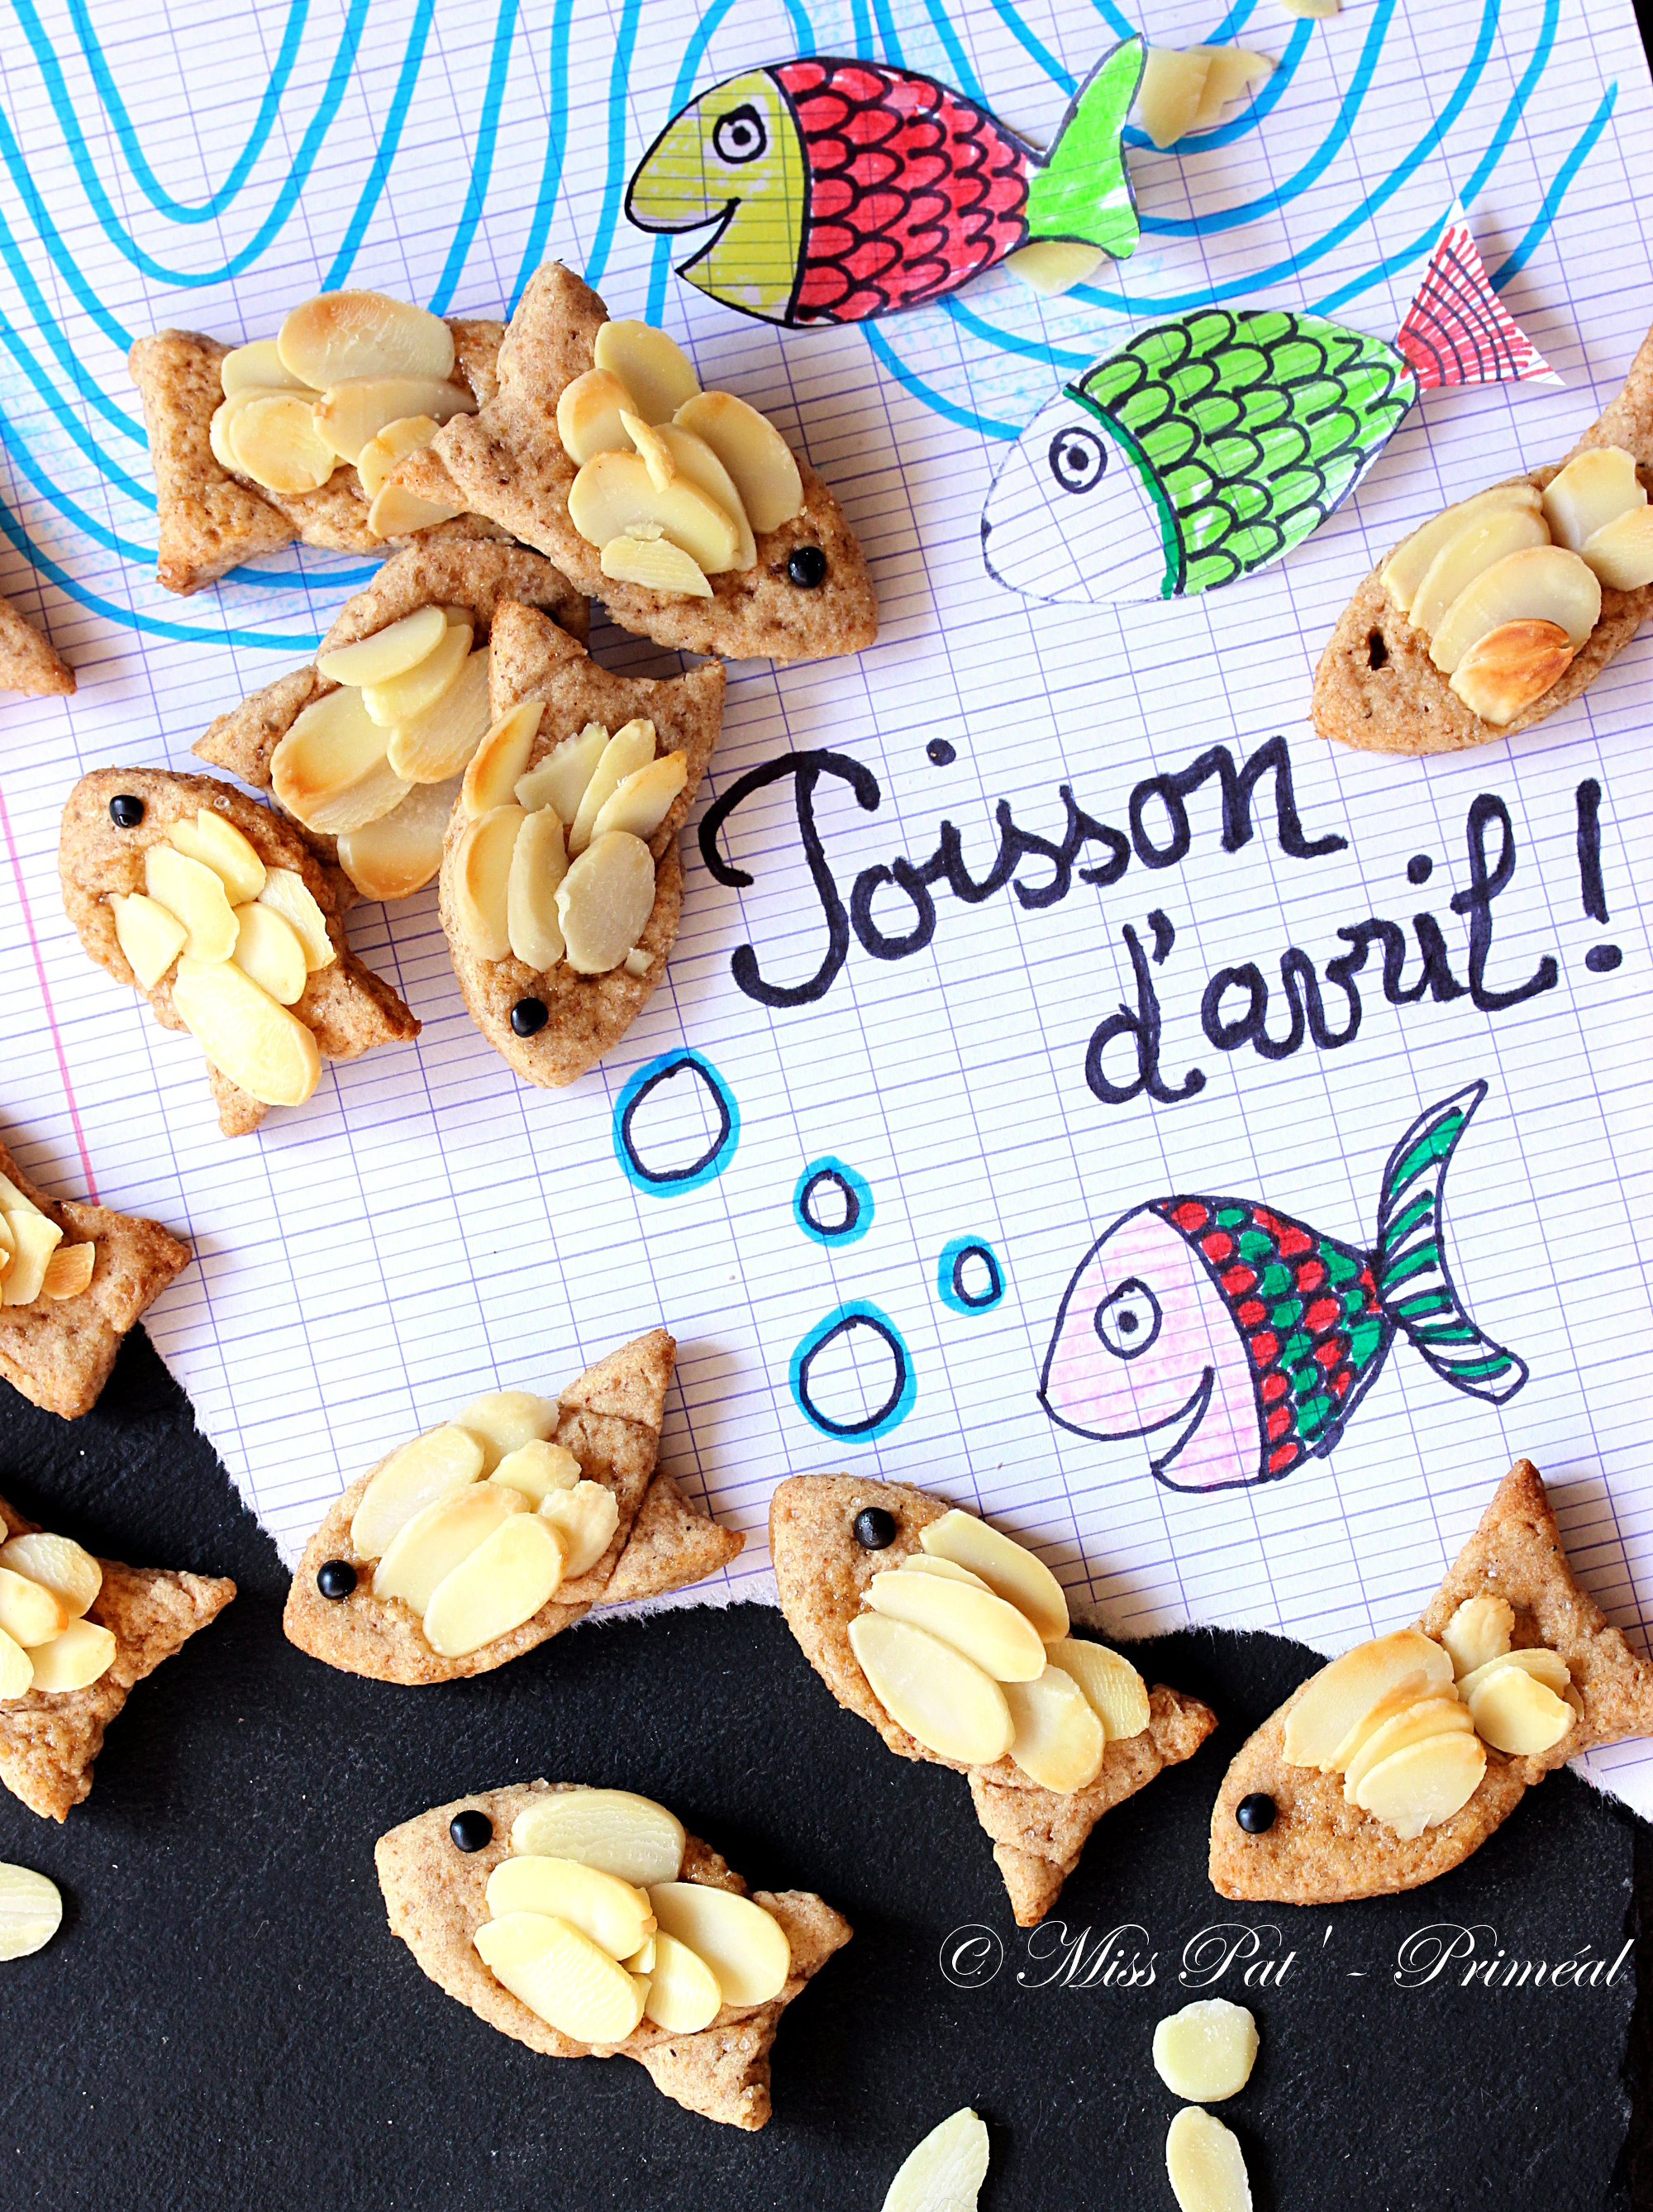 Recette Bio : Biscuits poisson d'avril